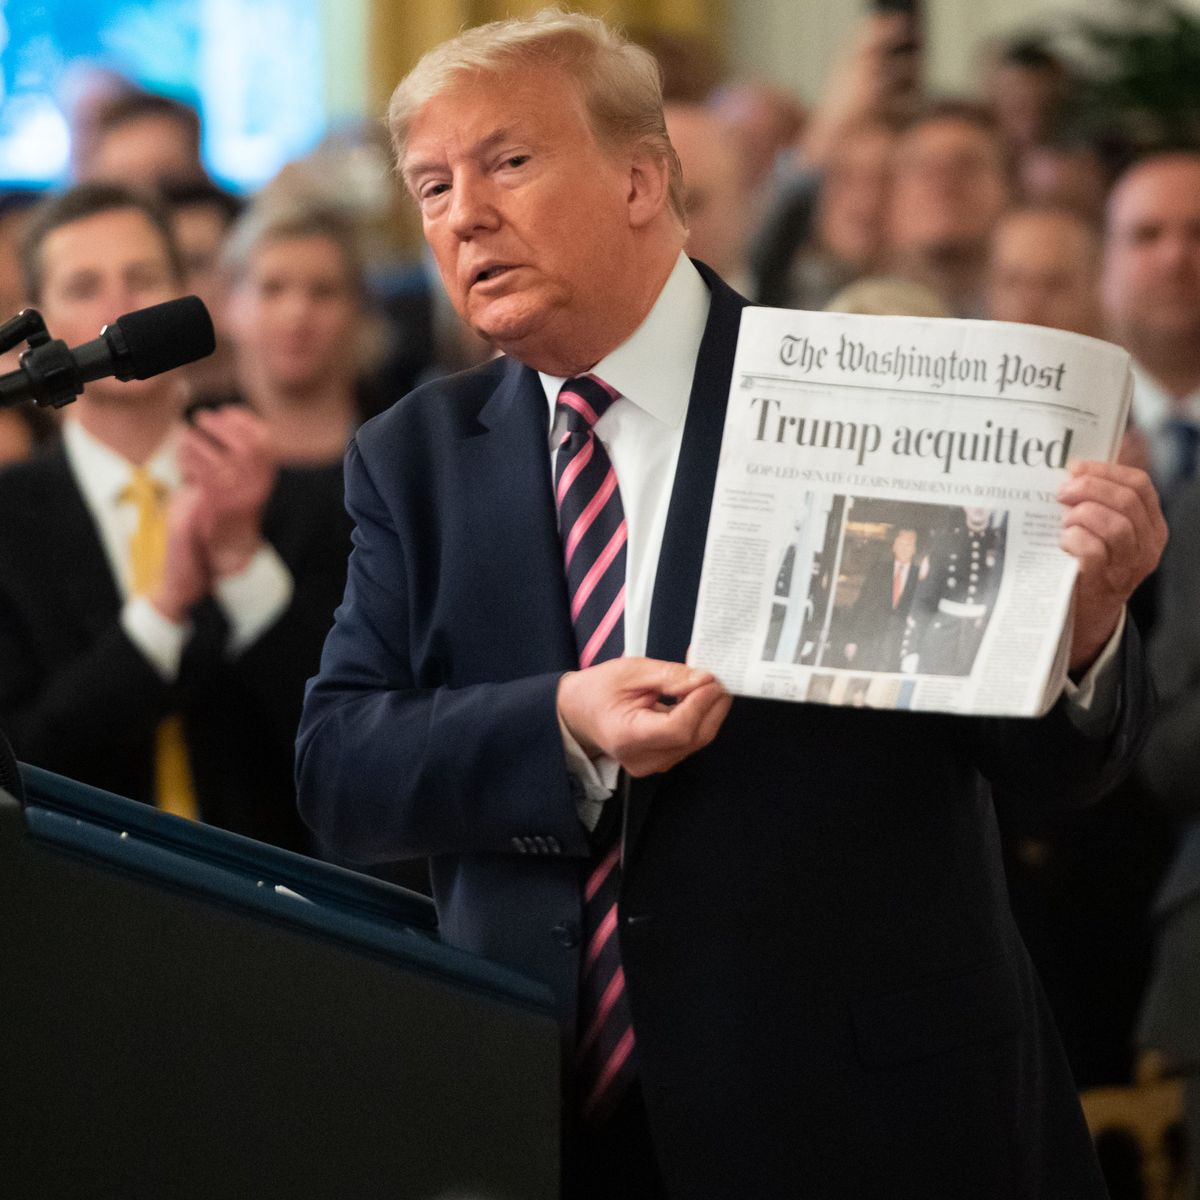 Witnesses 2020 THE NEW YORK TIMES FEBRUARY 8 Acquittal NEWSPAPER Trump